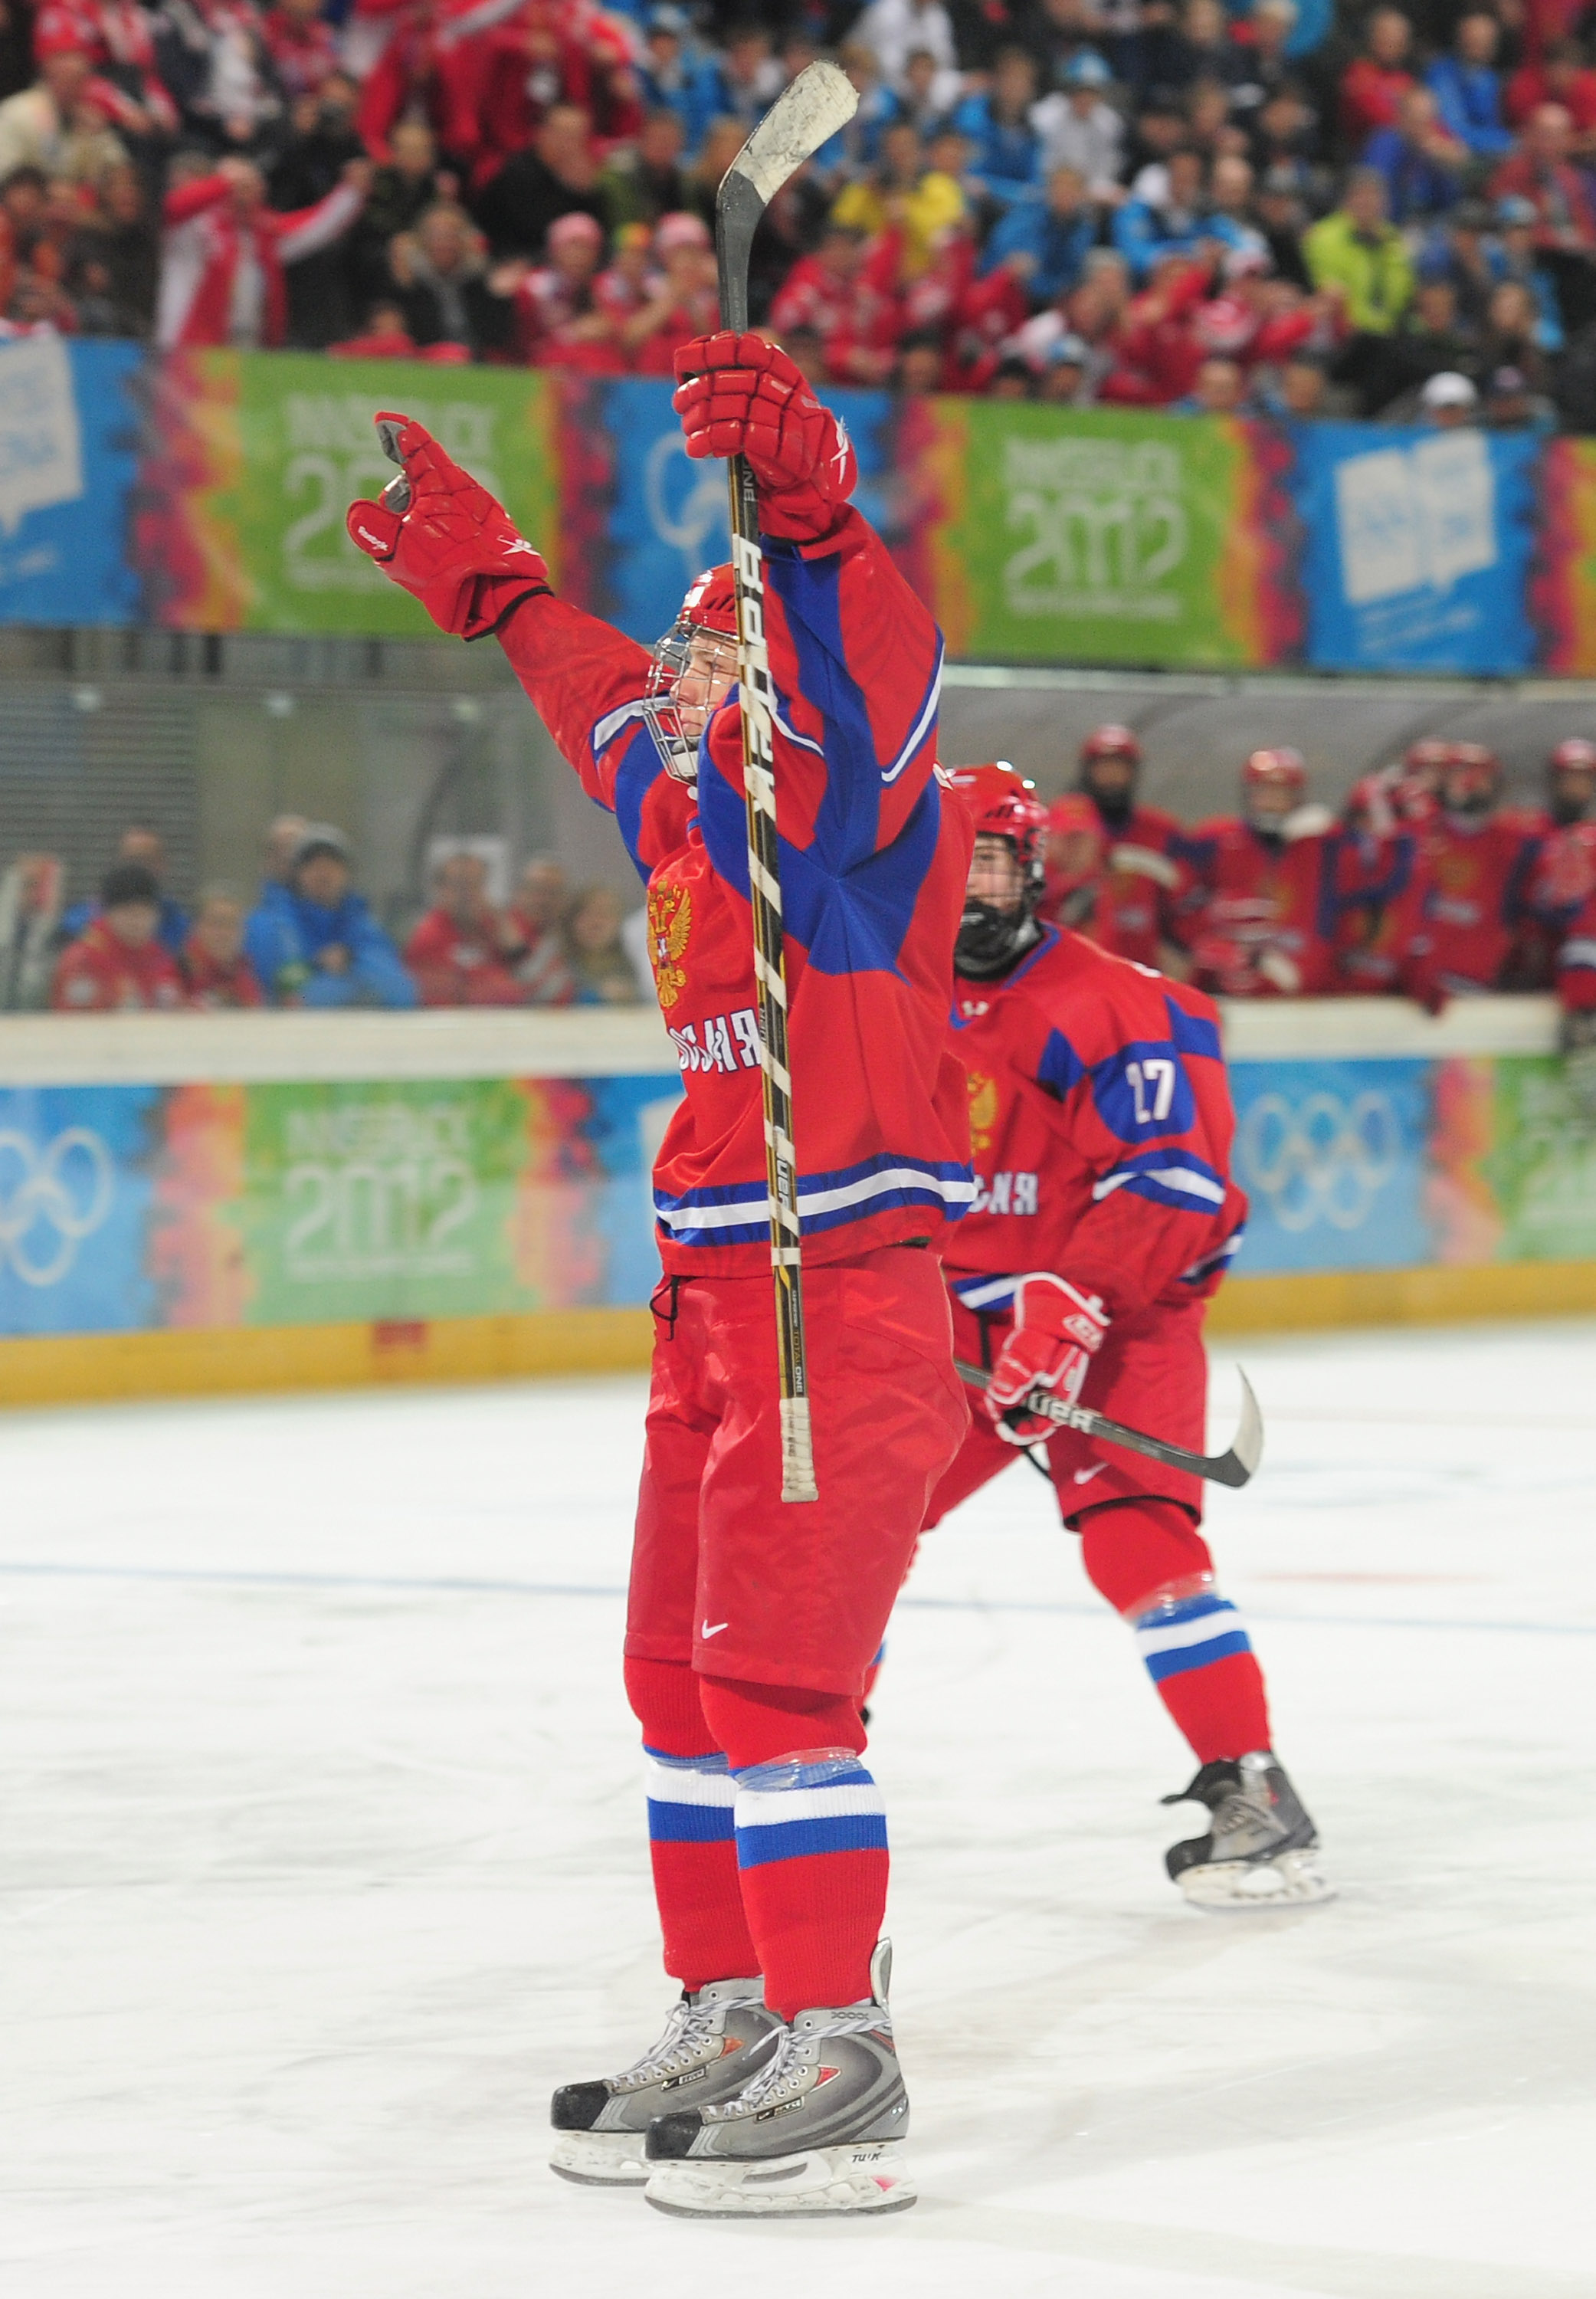 Evgeny Svechnikov of Russia celebrtaes after scoring during the men's semi final ice hockey match between USA and Russiaon January 20, 2012